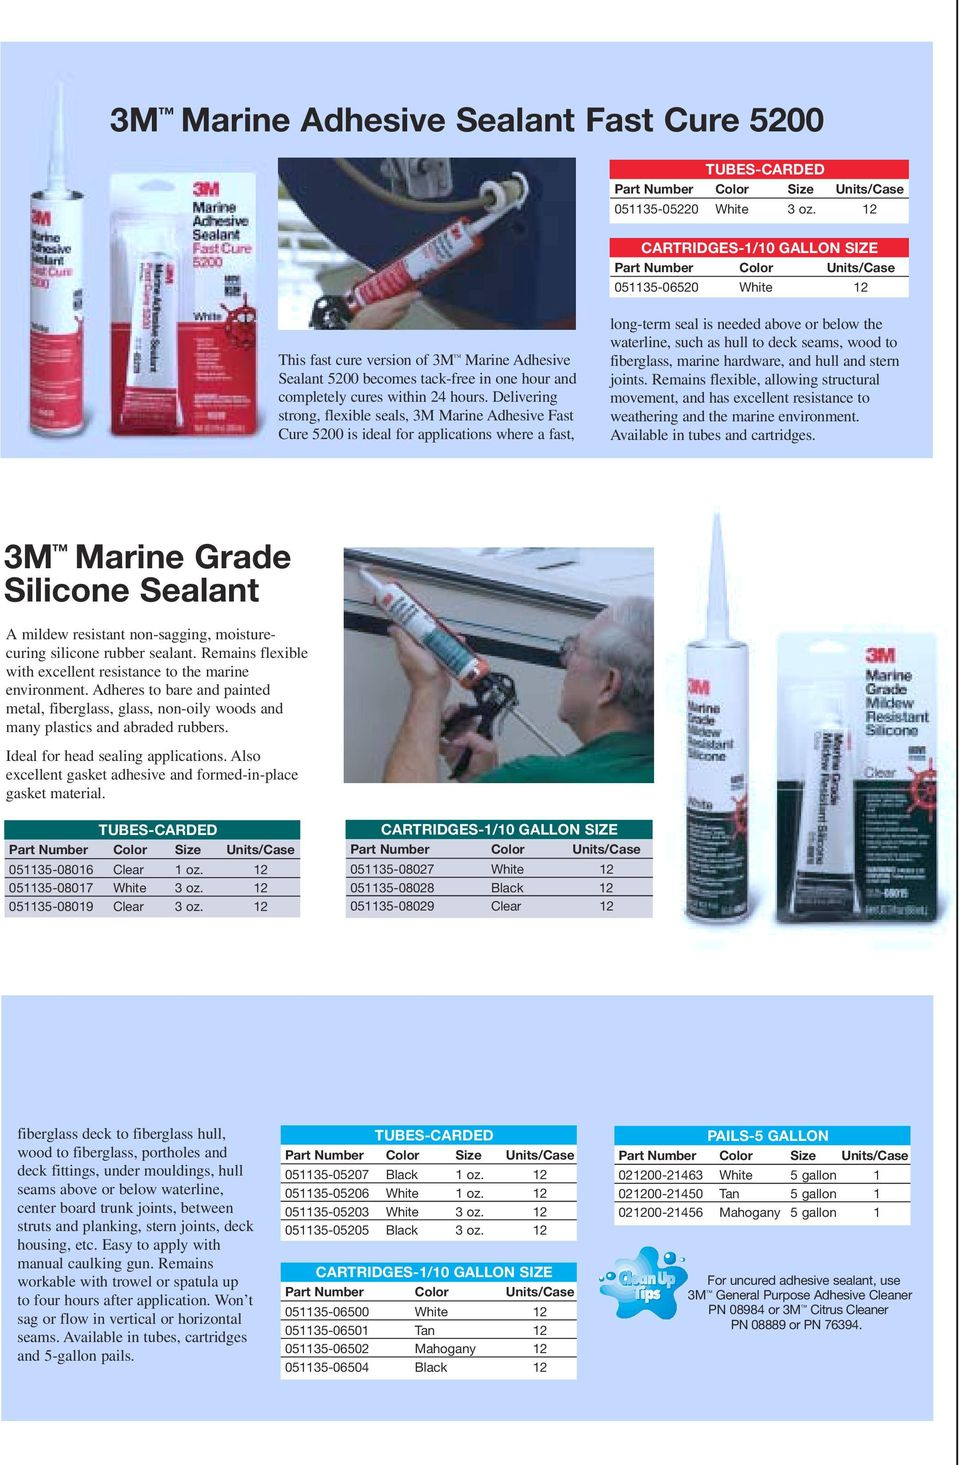 Delivering strong, flexible seals, 3M Marine Adhesive Fast Cure 5200 is ideal for applications where a fast, long-term seal is needed above or below the waterline, such as hull to deck seams, wood to